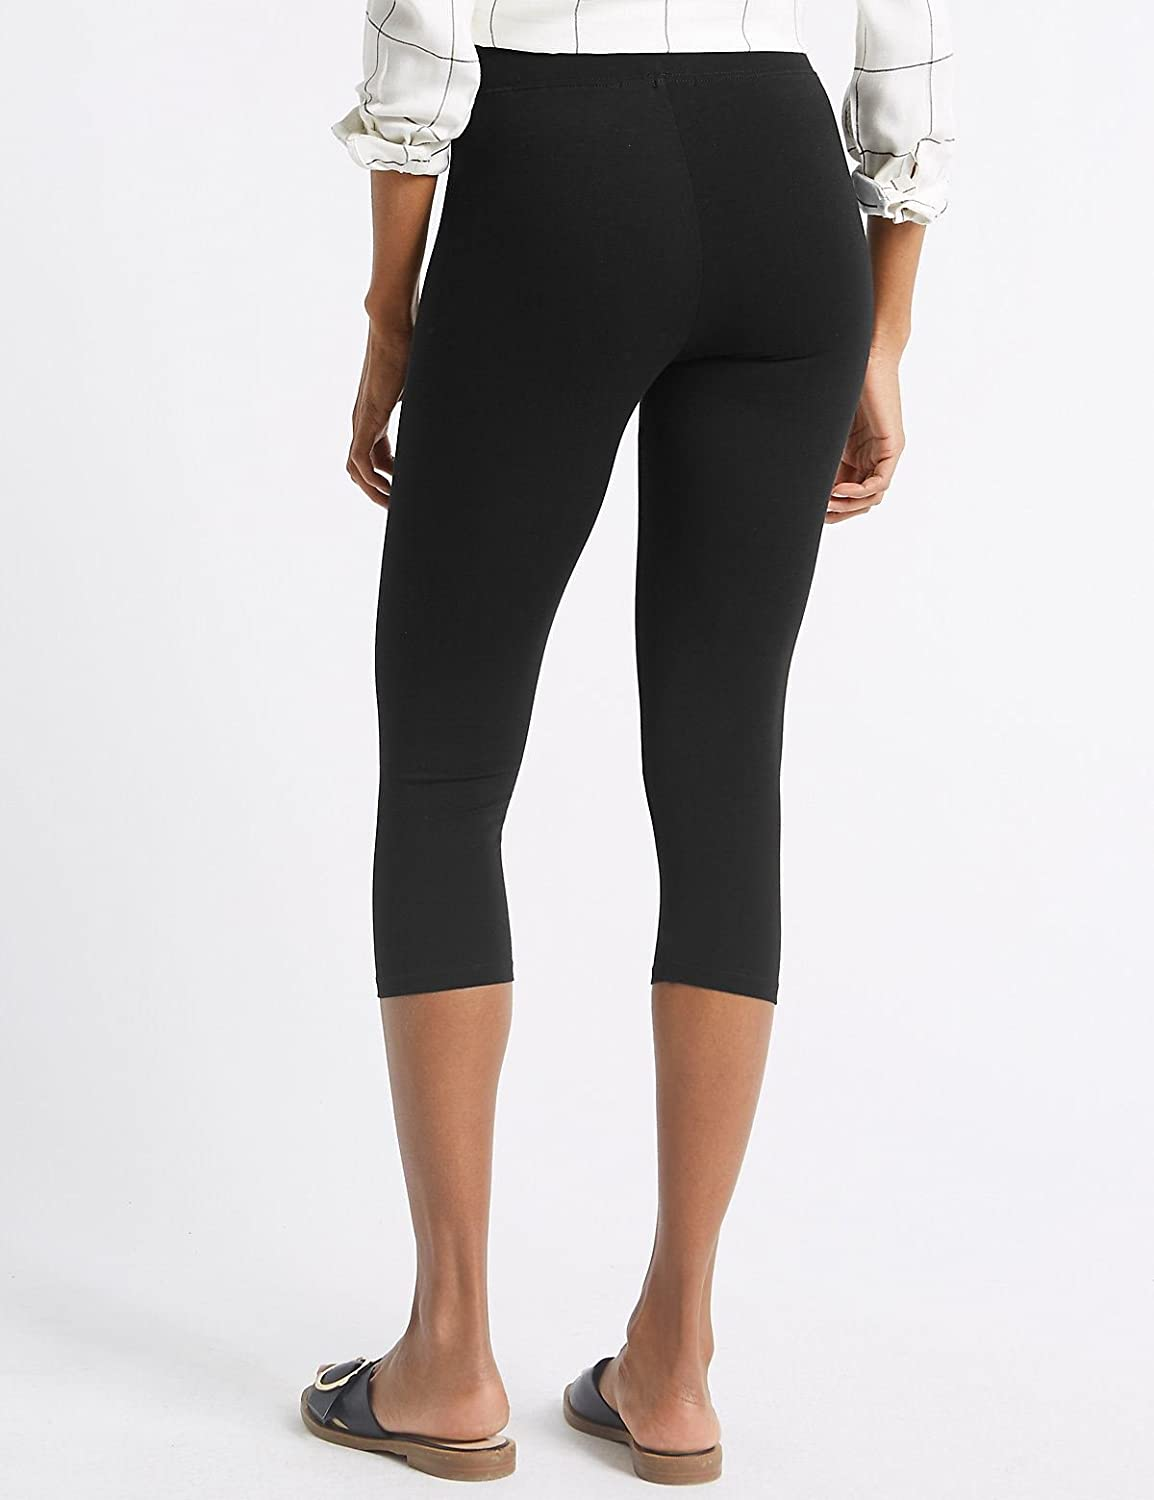 2539549227a017 Ex Marks & Spencer M&S Womens Cropped Extra Stretch Leggings RRP £16:  Amazon.co.uk: Clothing